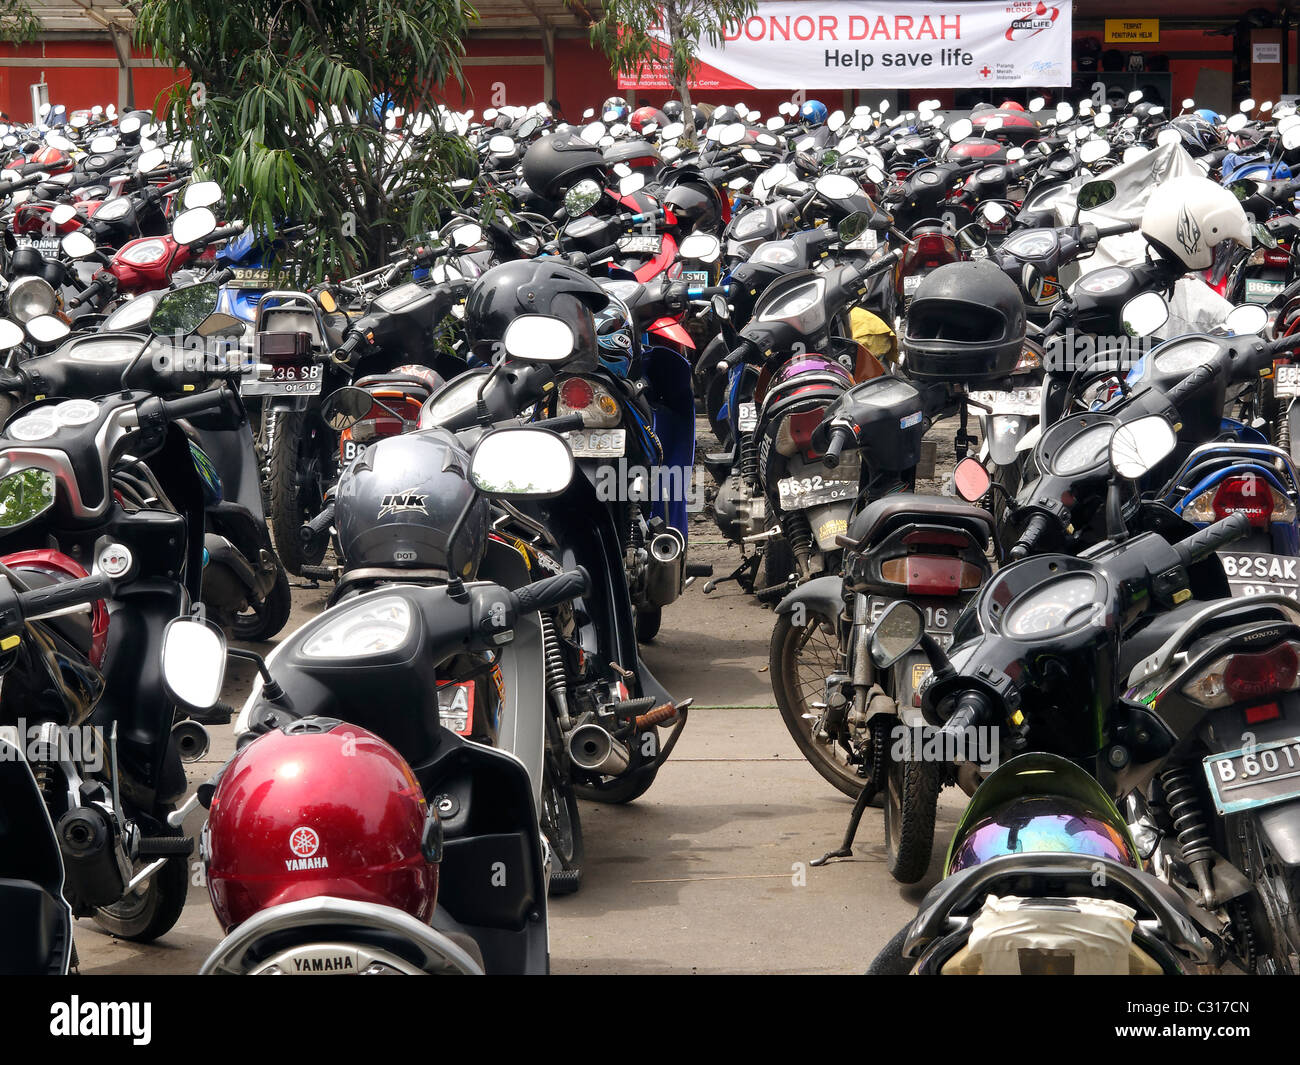 Motorbikes, Indonesia, March 2011 - Stock Image